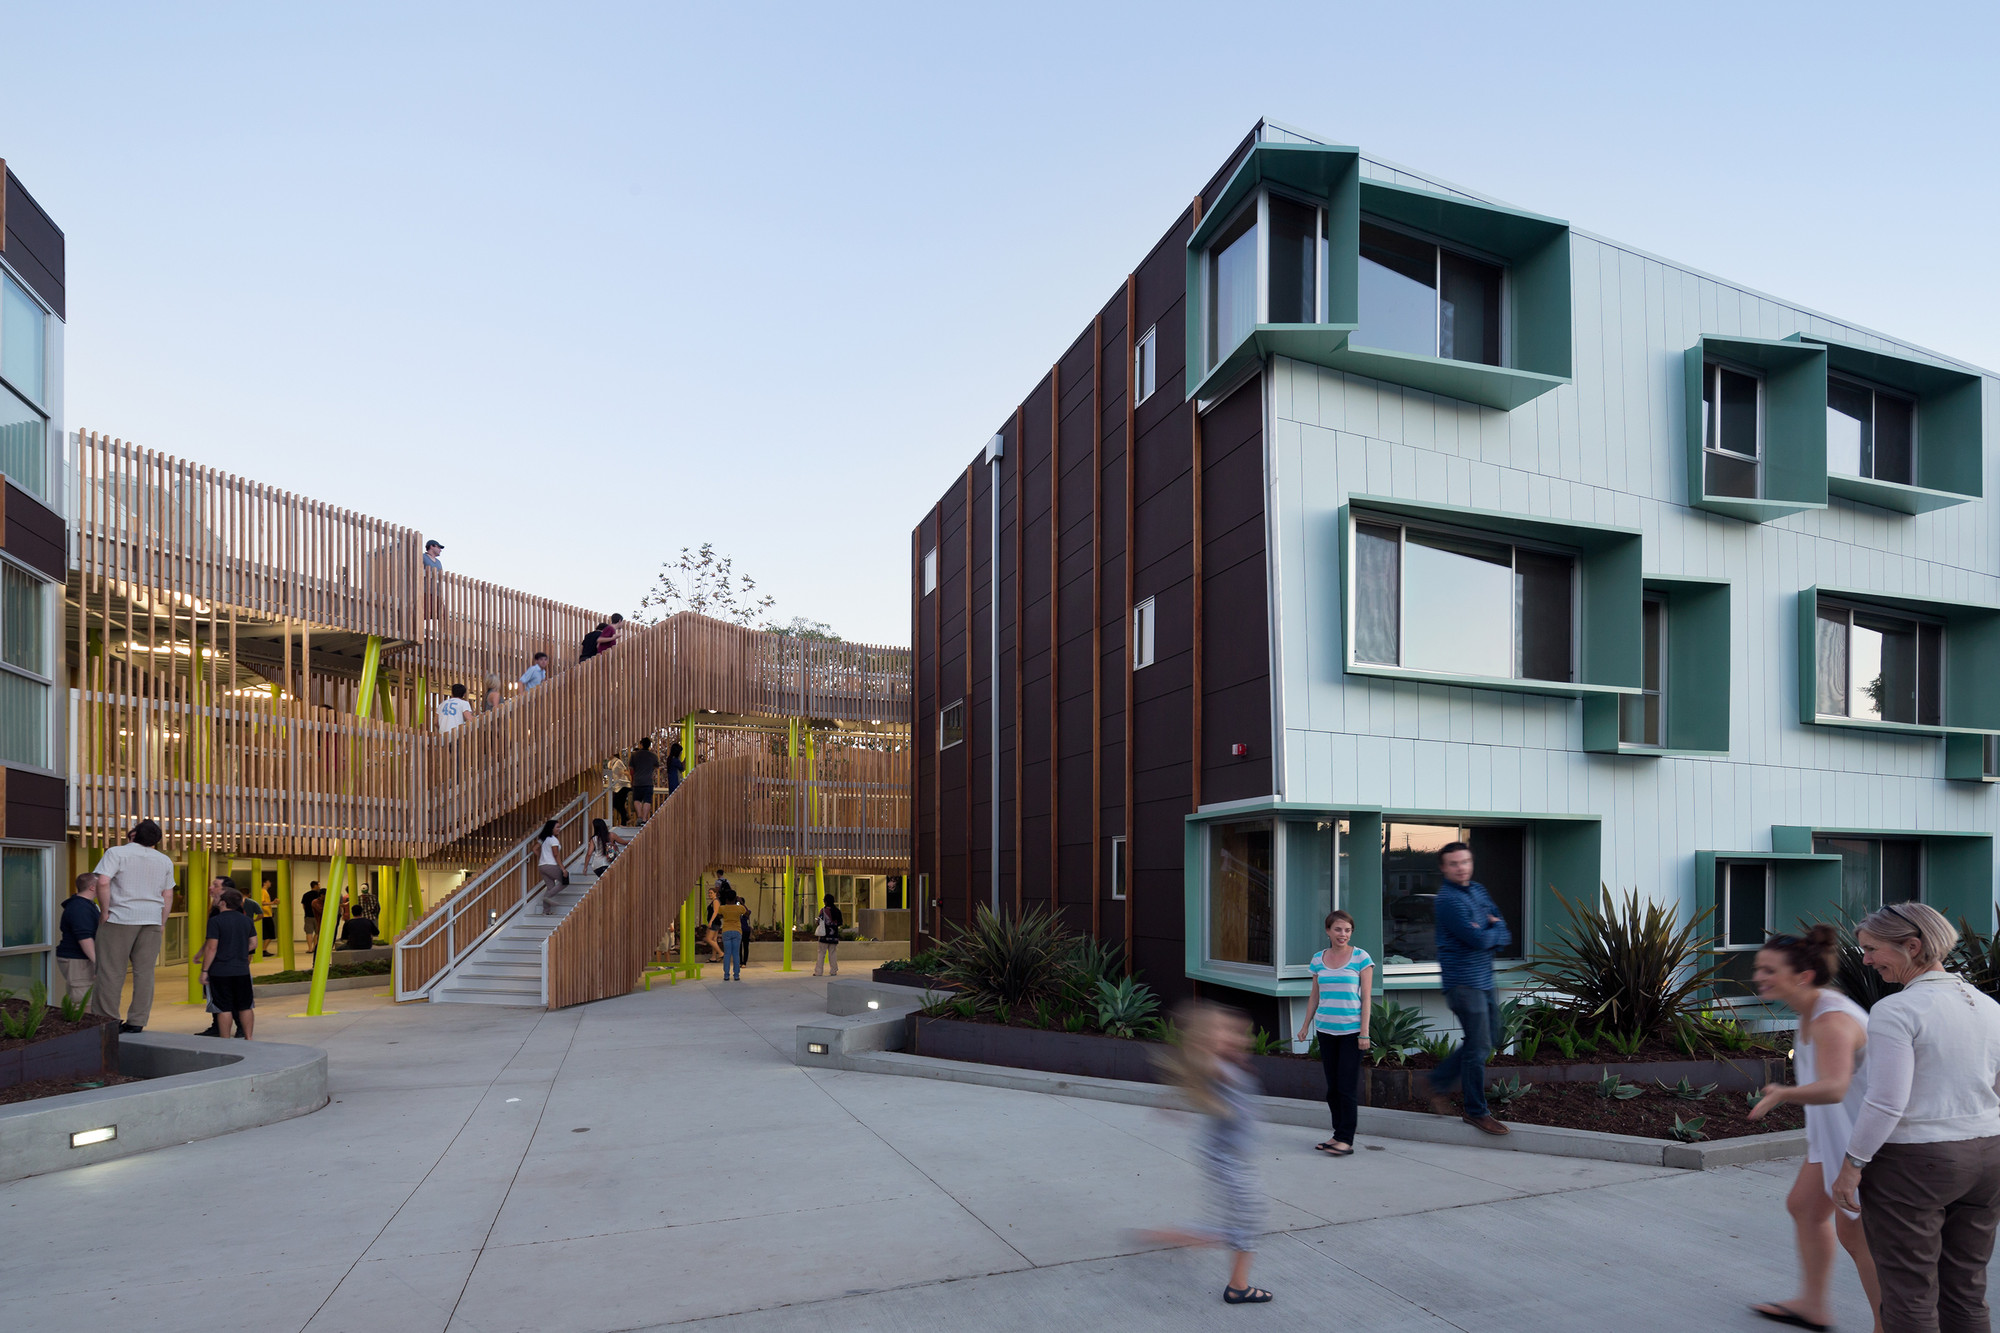 Broadway Housing / Kevin Daly Architects, © Iwan Baan